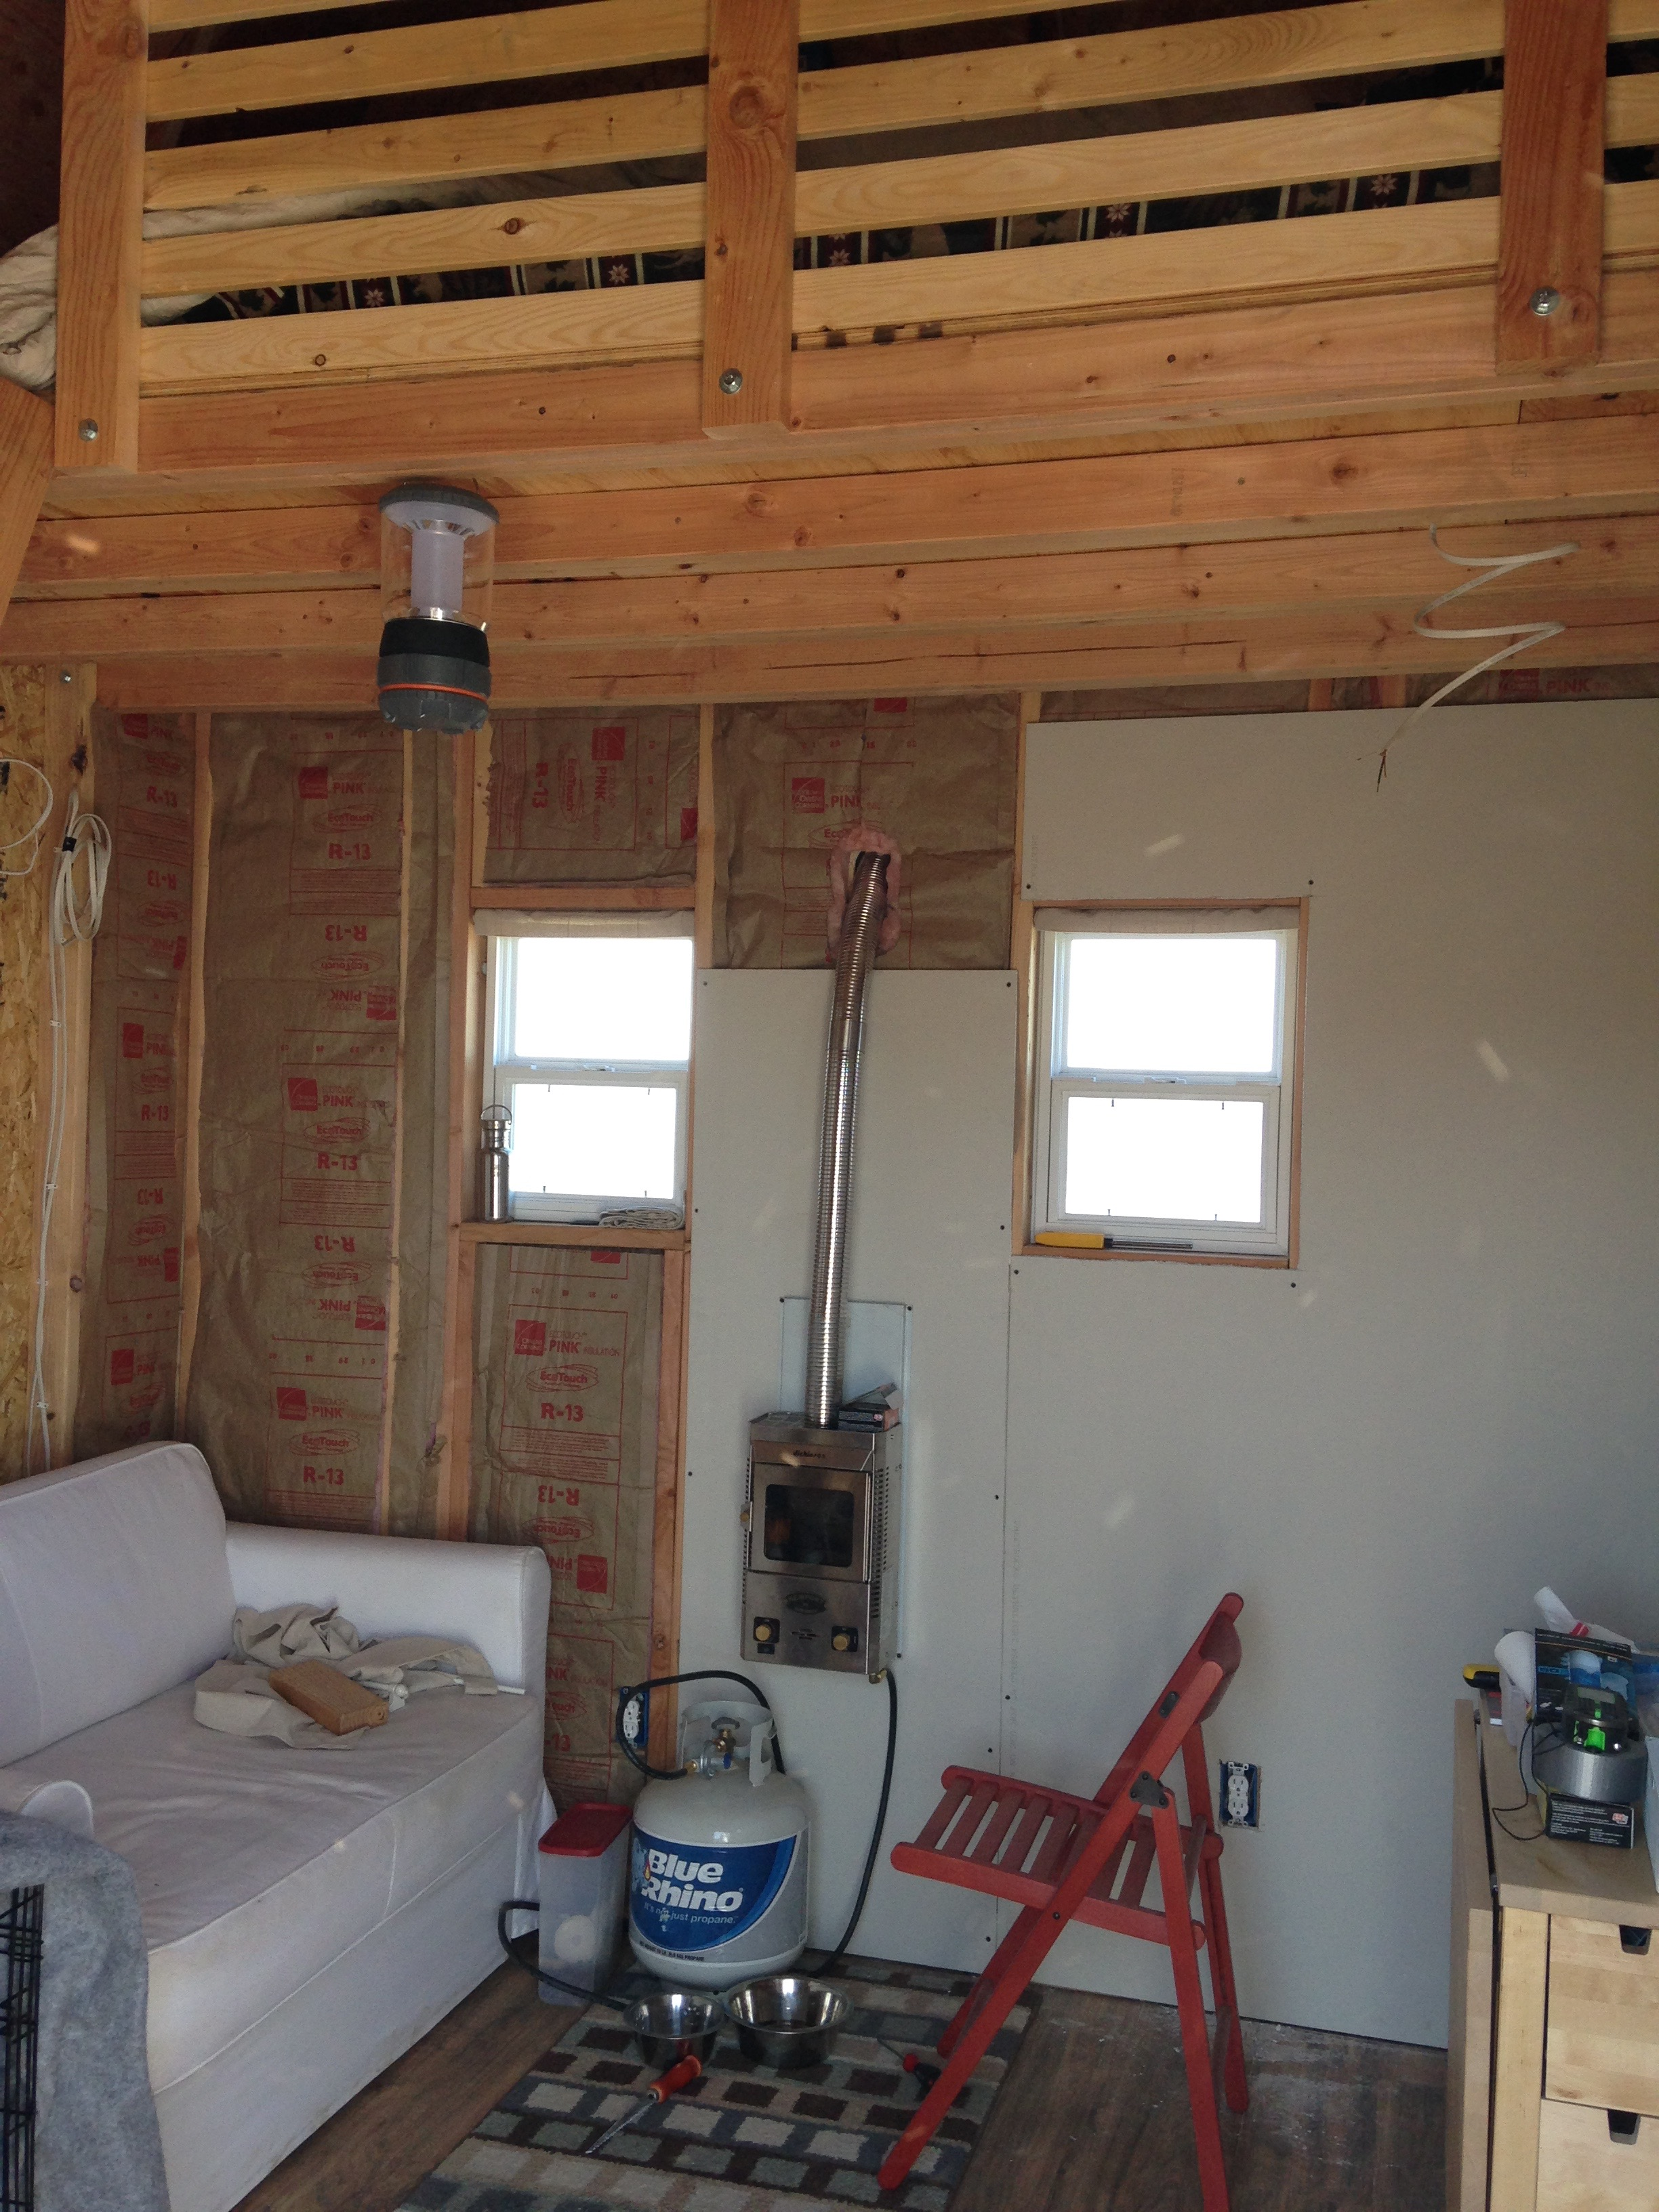 Insulation in place with a few drywall panels installed.